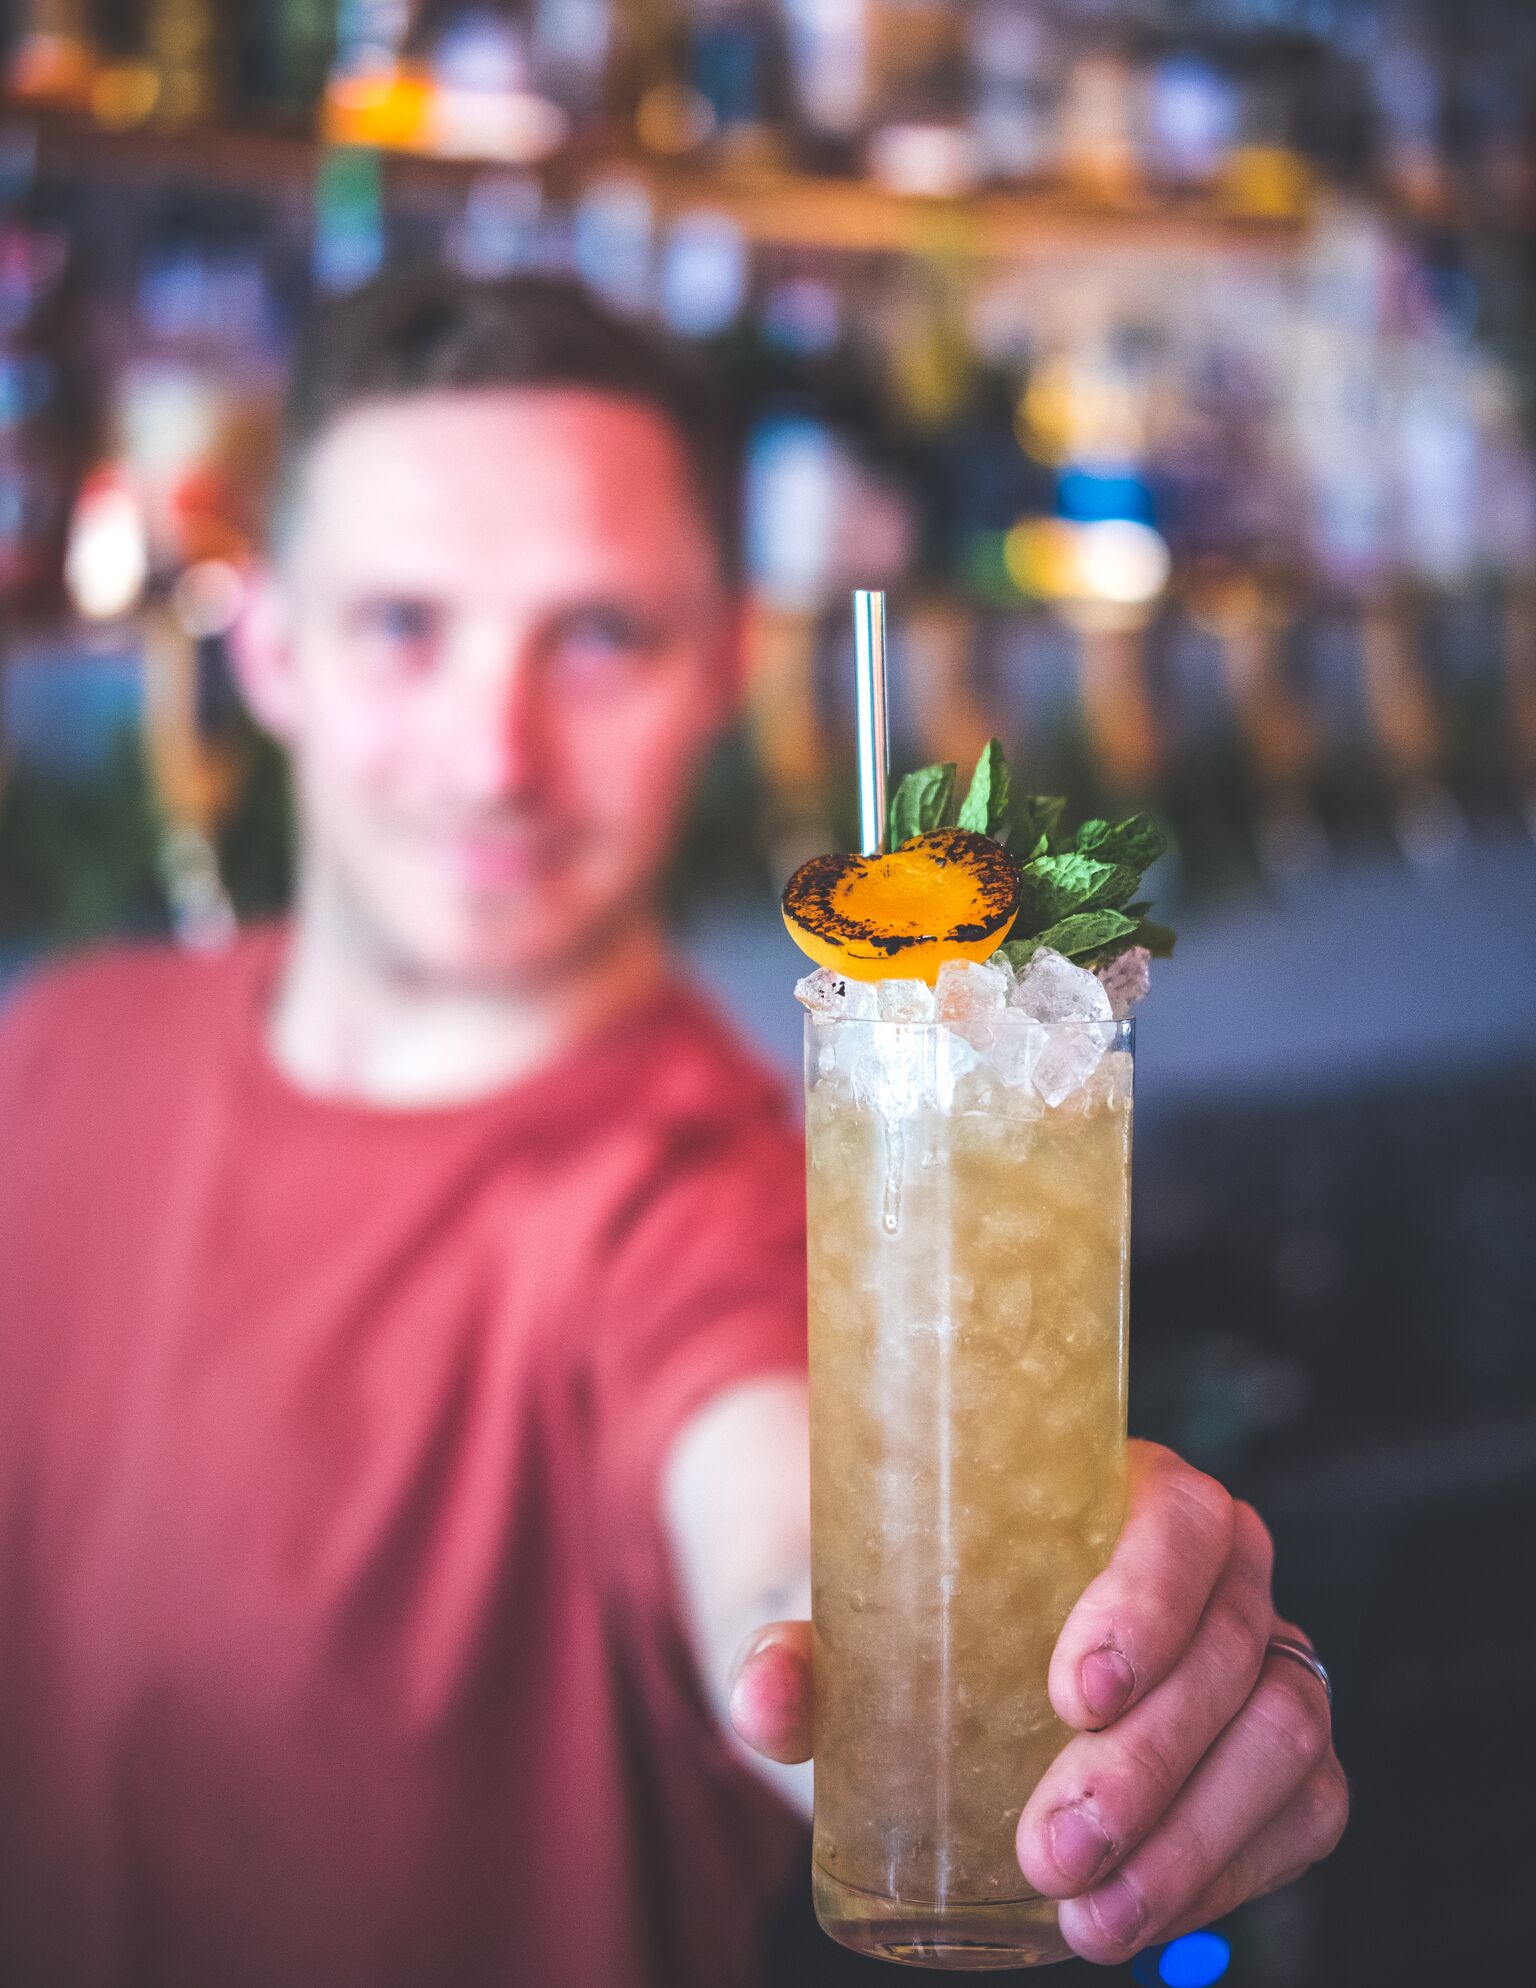 Rude BoyBeverage Catering & Pop Up Bar - Delicious Drinks, Great Service and Fun Vibes.